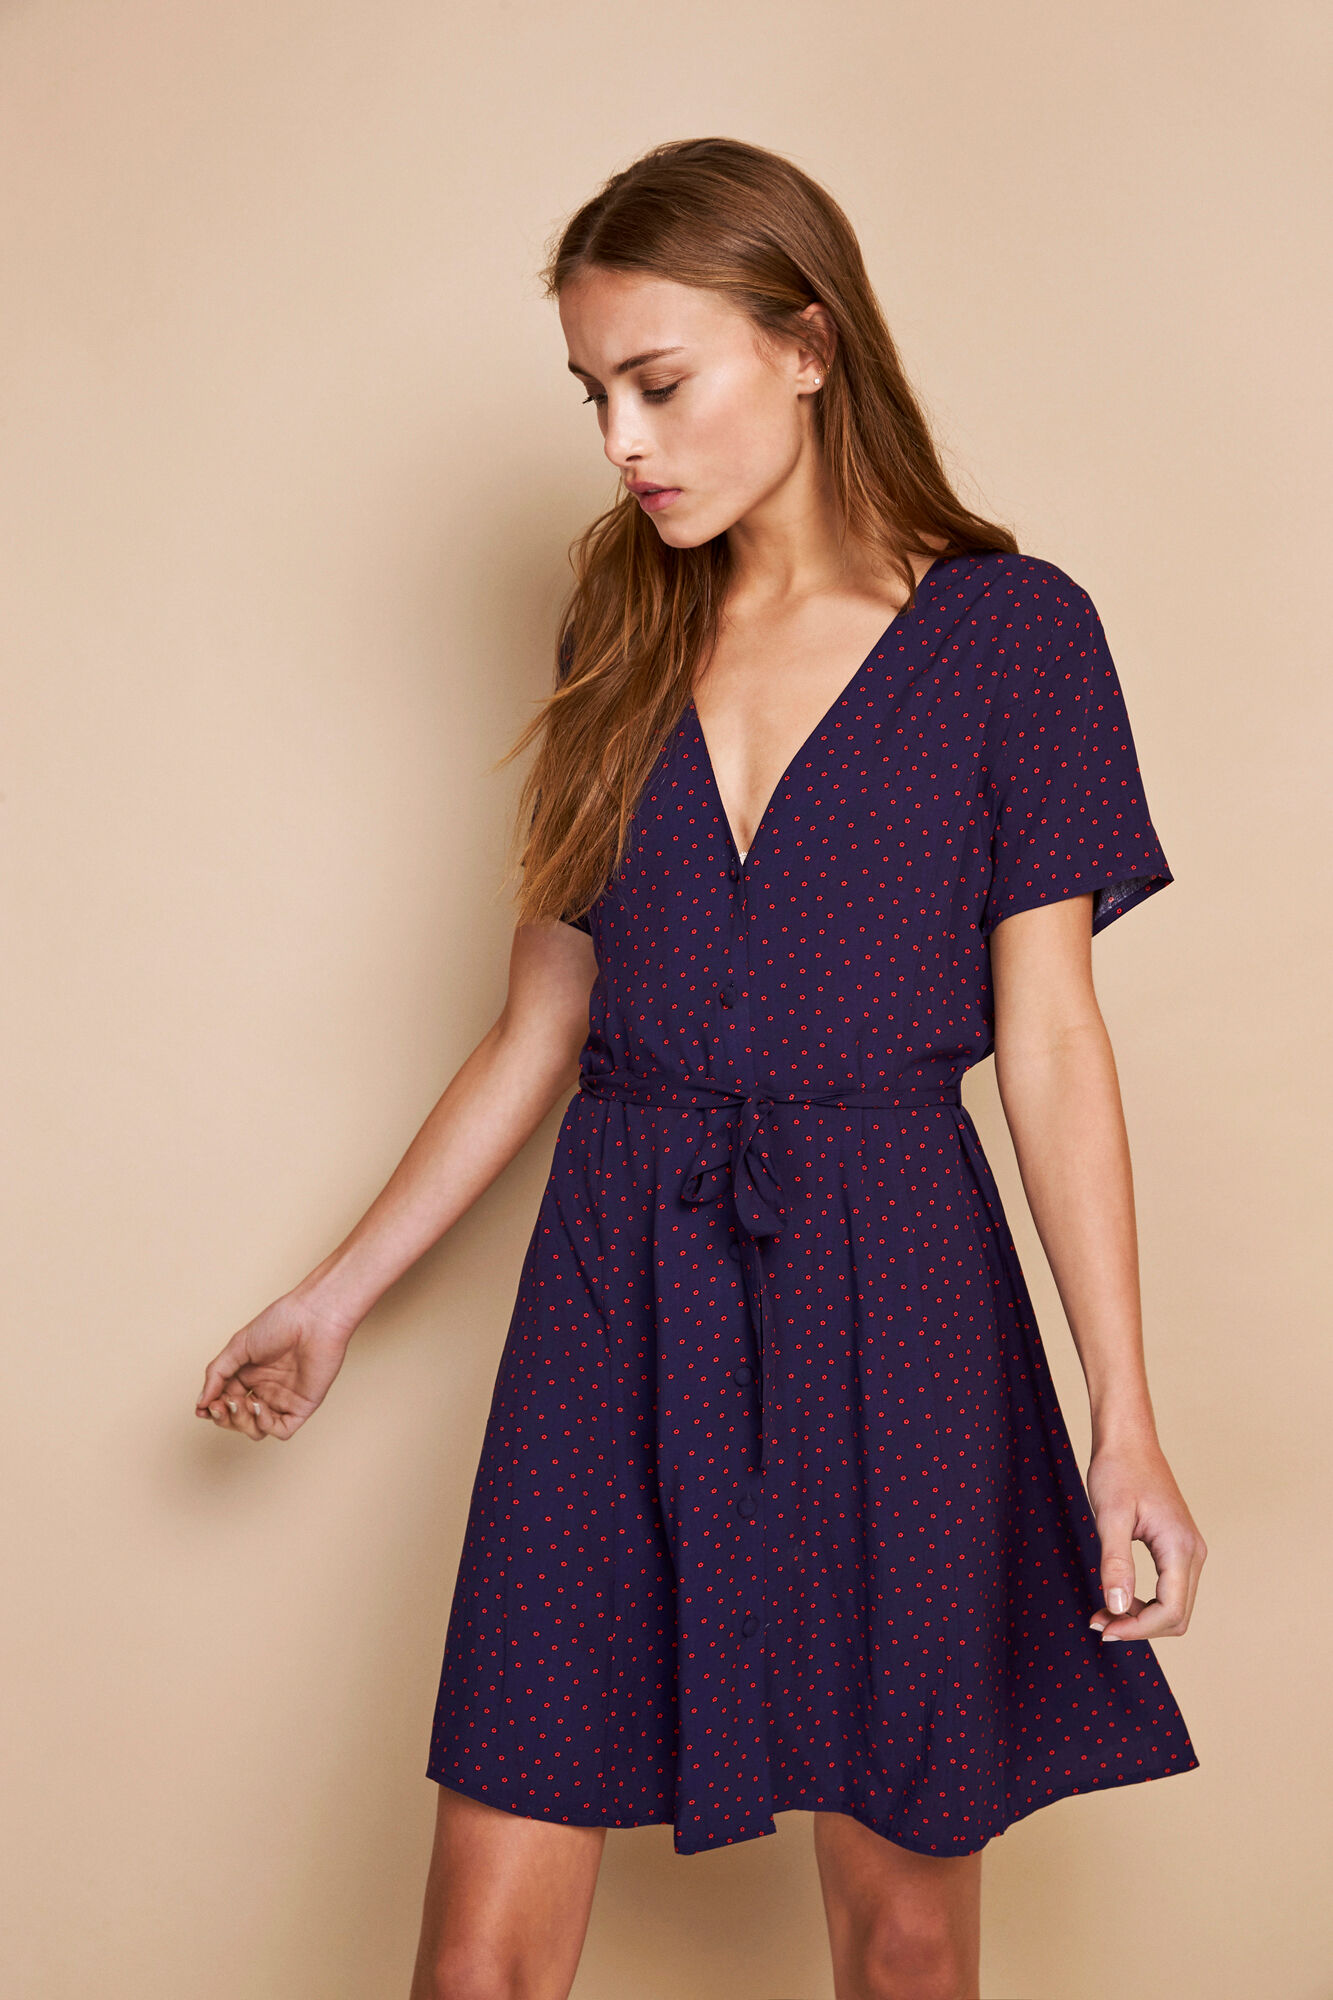 ENFAIRFAX SS DRESS AOP 6601